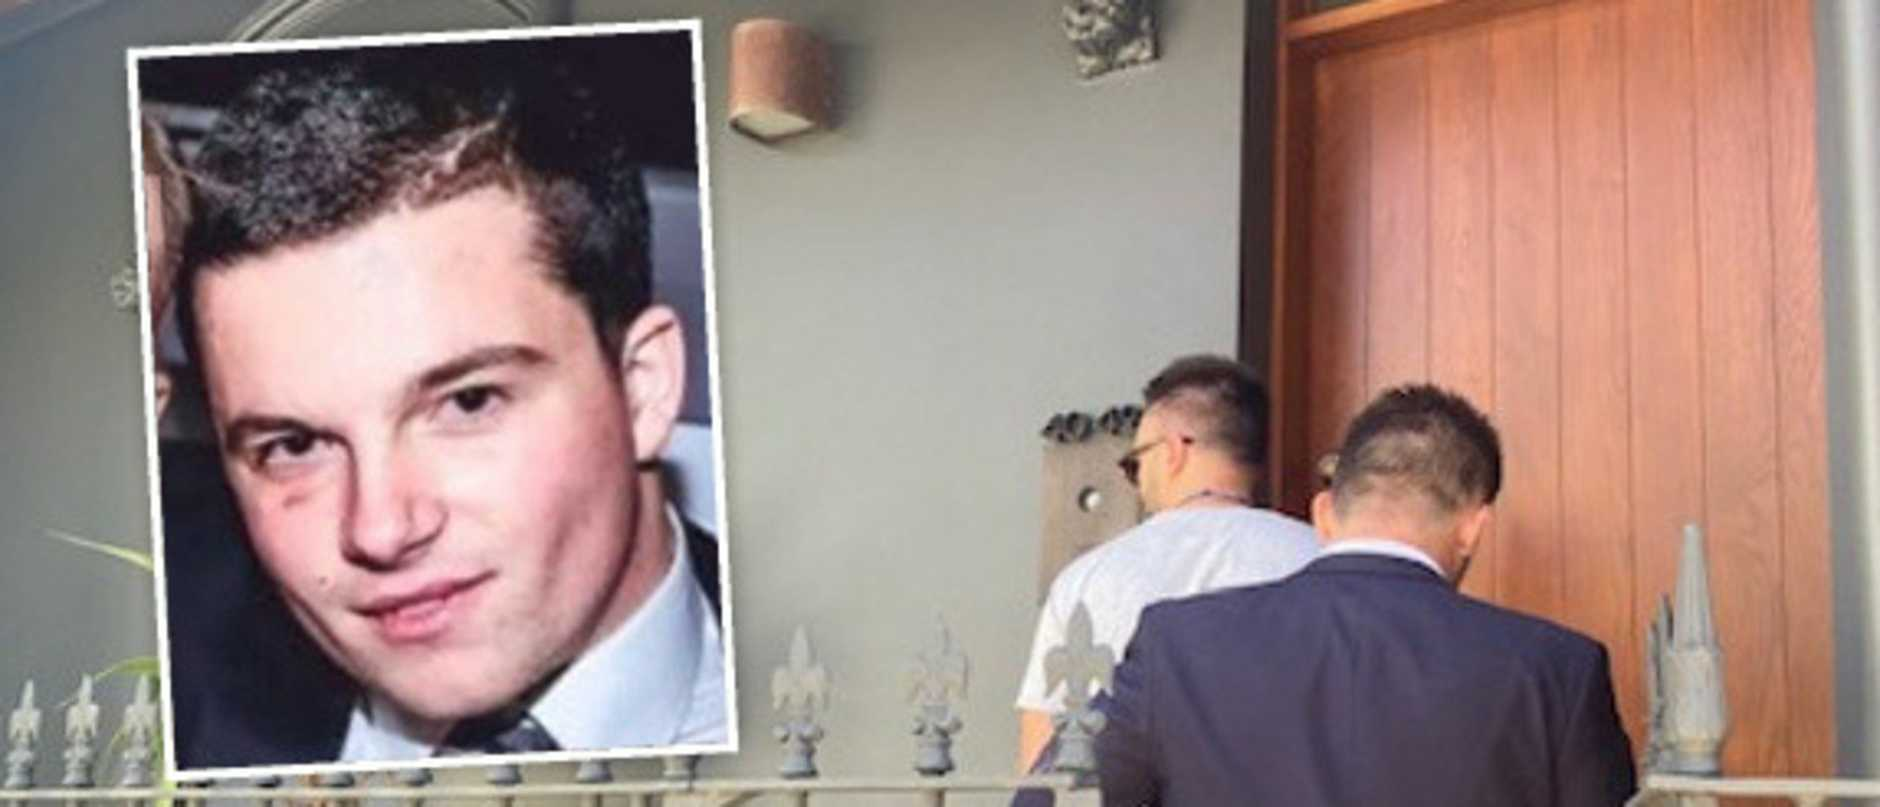 Police visit Hugo Ball in Paddington after Bellevue Hill stabbing